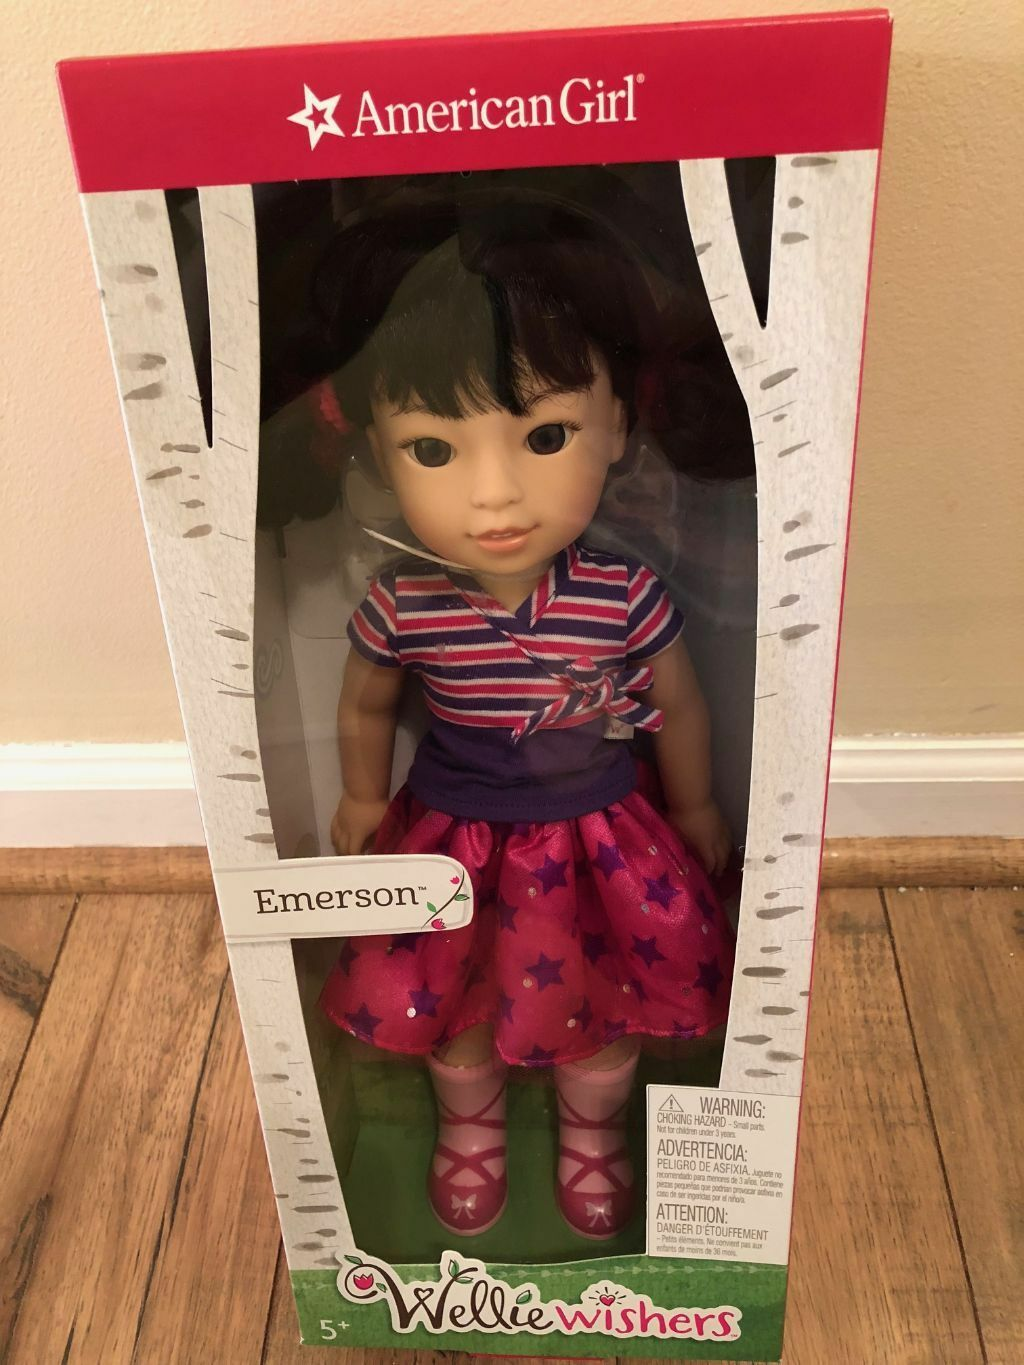 "AMERICAN GIRL WELLIE WISHERS EMERSON Doll 14.5 "" Inch NEW"